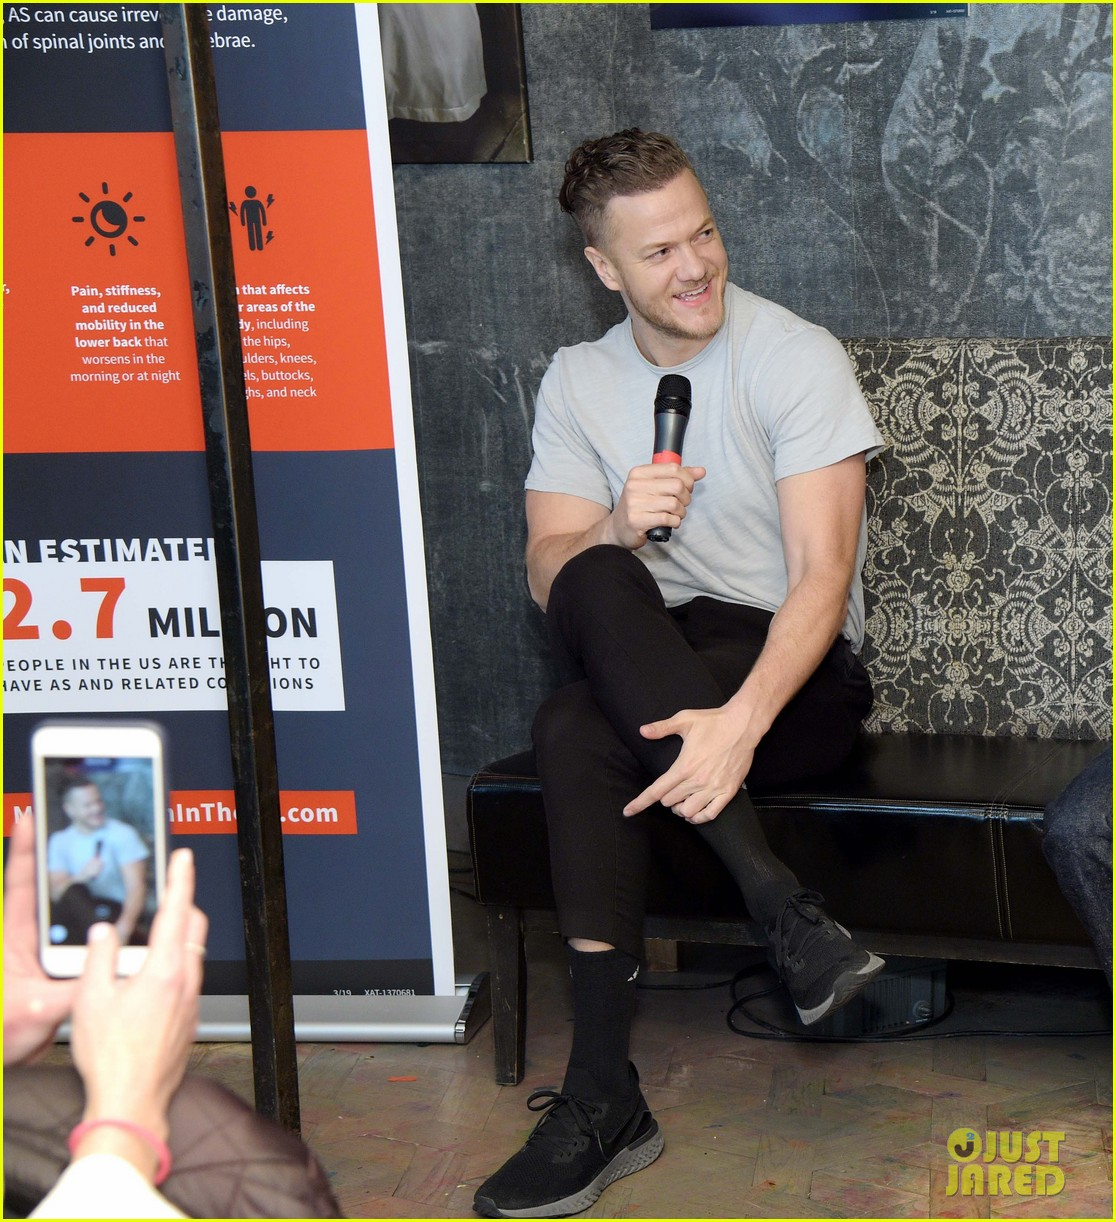 imagine dragons dan reynolds launches monster pain in the as campaign 024267270